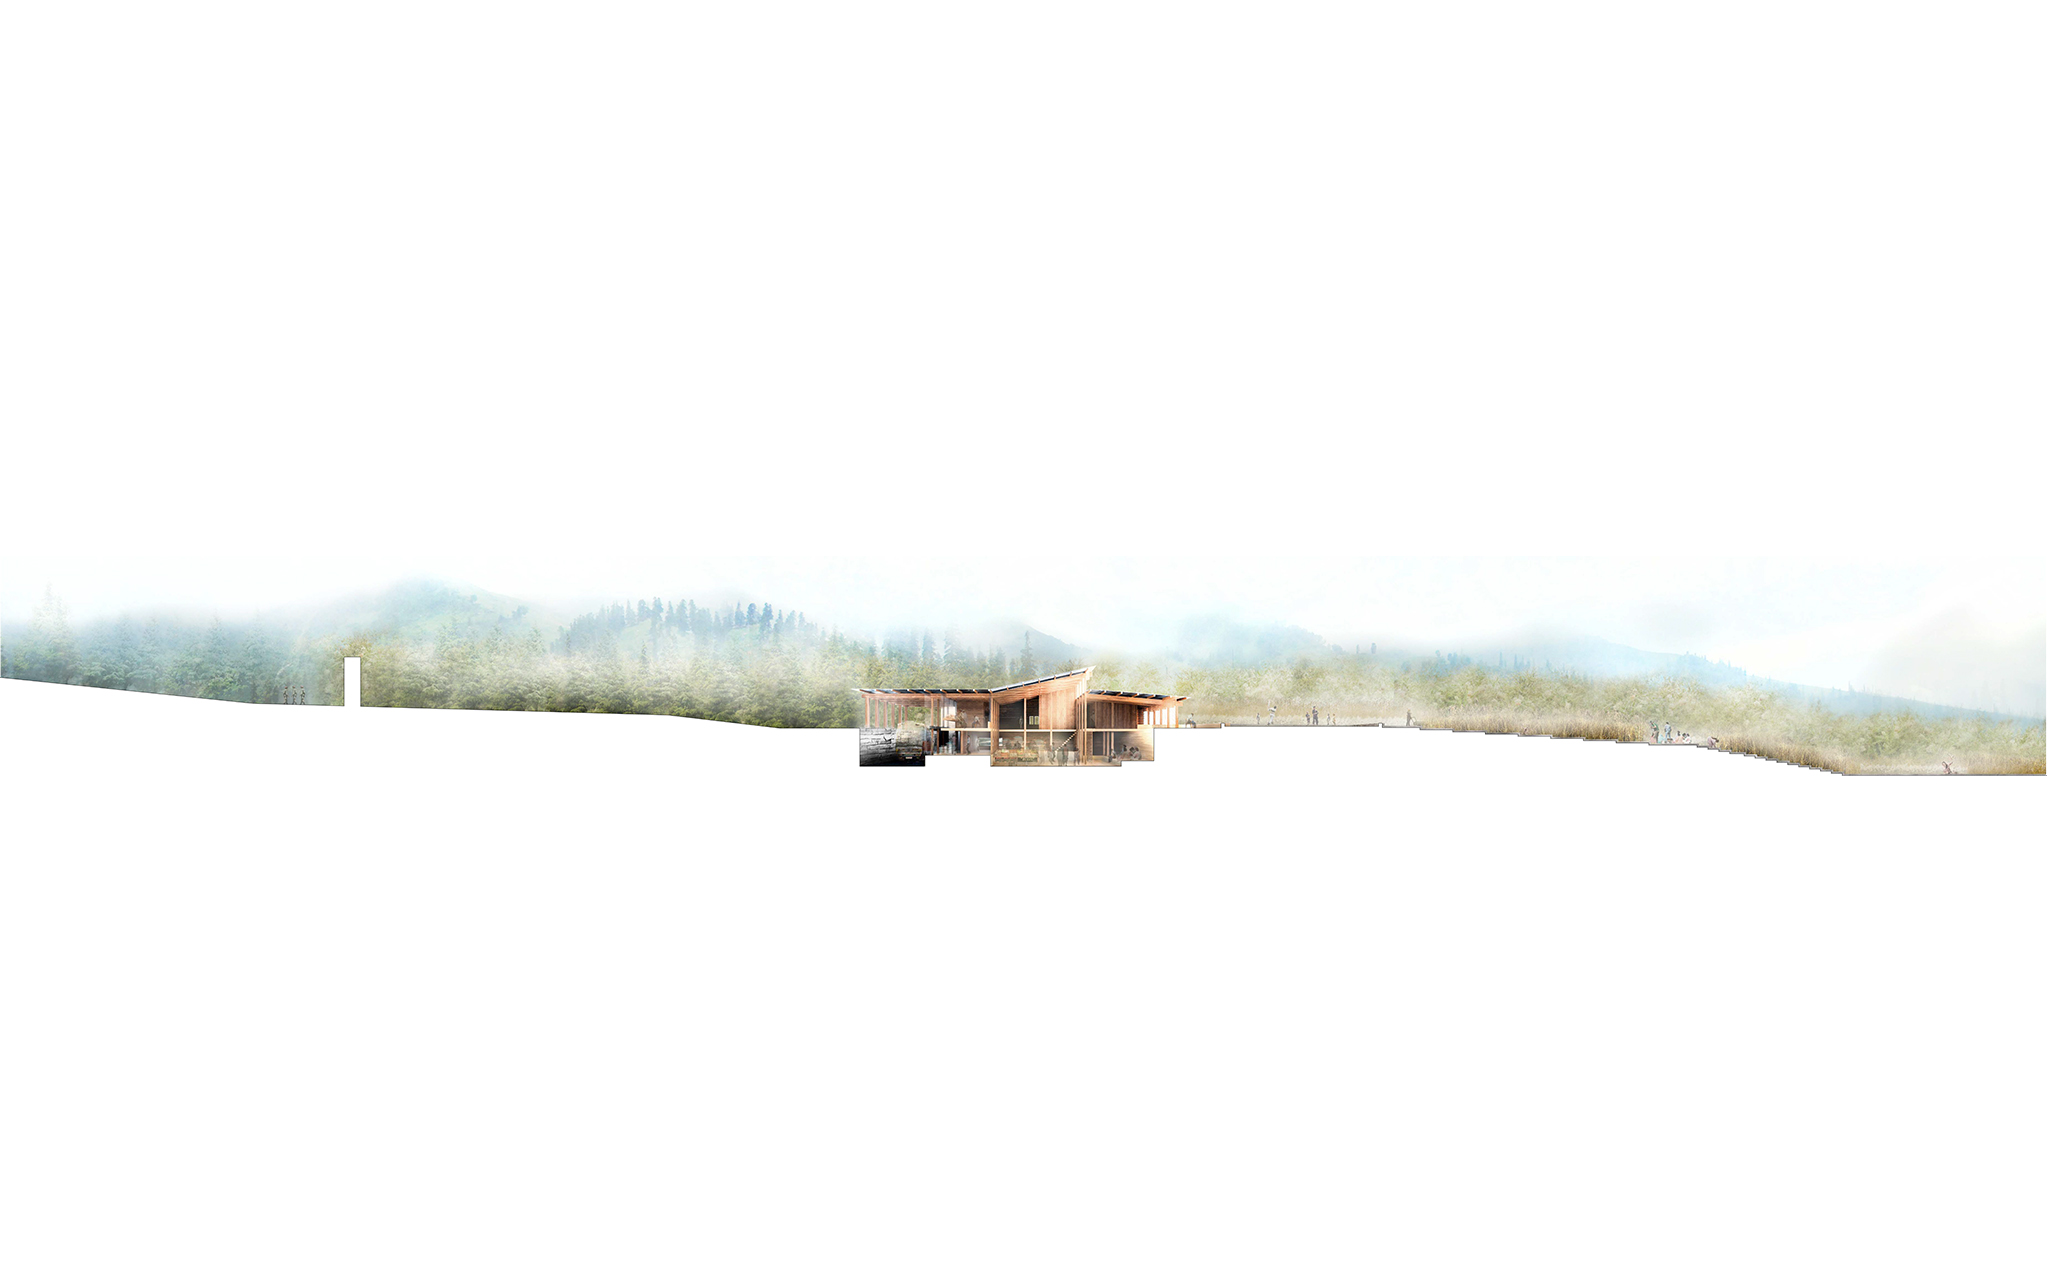 Figure 15. Cross-section of a typical shared border building that is partially sunken into the ground and opens up to the landscape along the datum of the border.